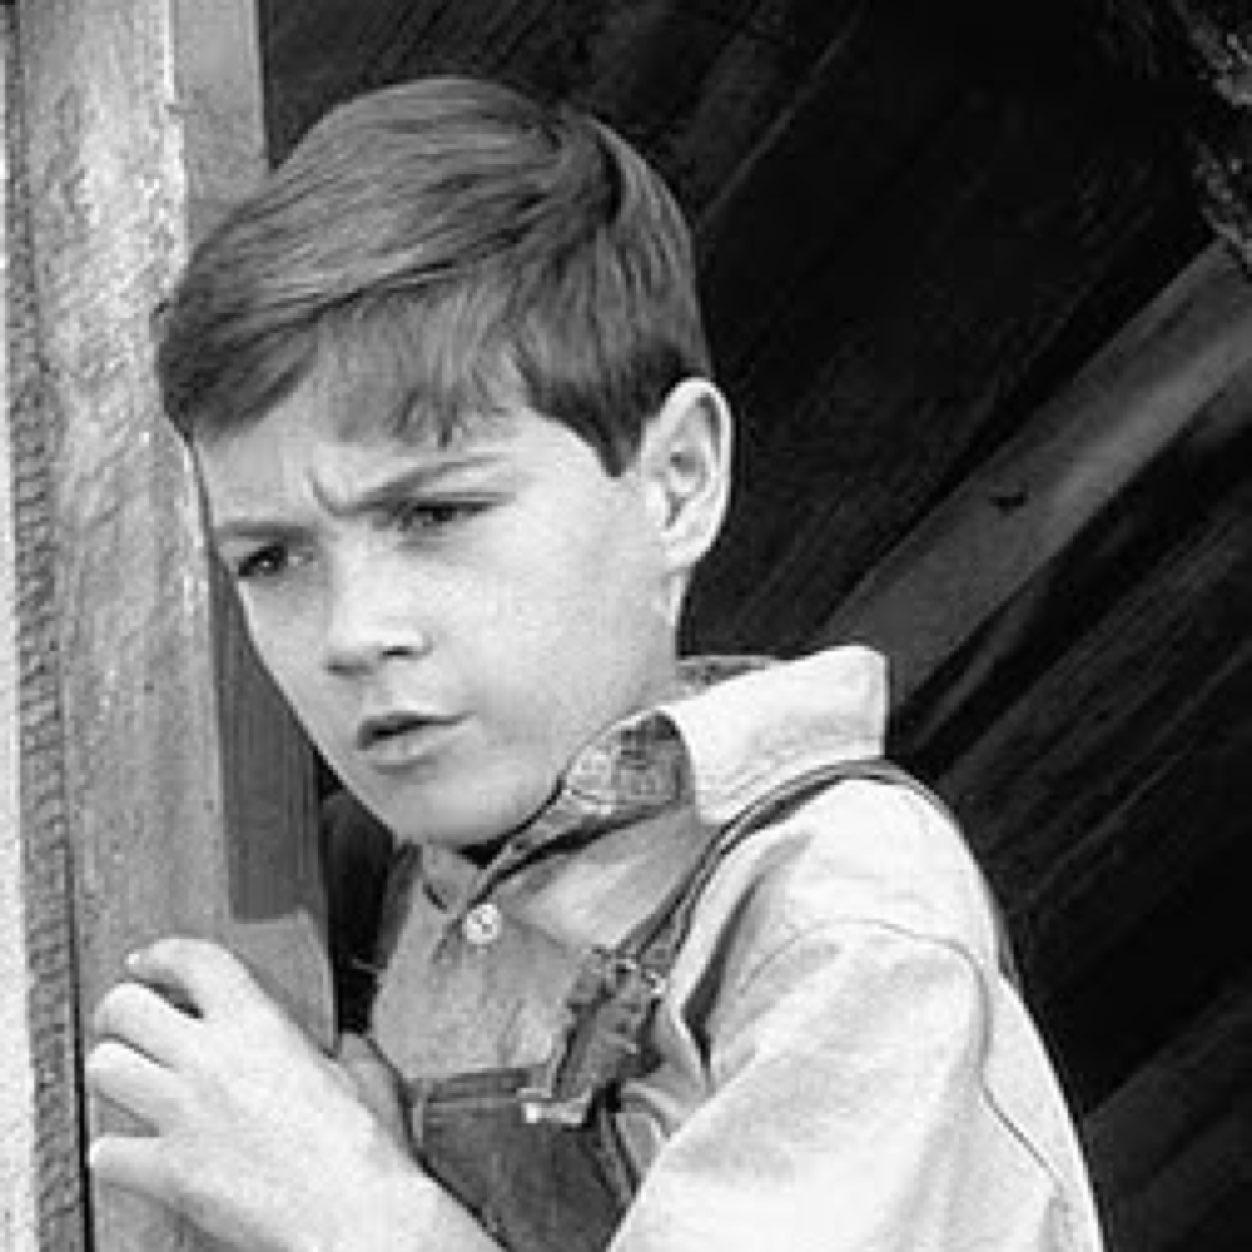 the effect of scout finchs naivete The young scout finch, from to kill a mockingbird, by harper lee, is one of american literature's most iconic and unforgettable fictional charactersthe book deals with issues of racial injustice and gender roles in the american south.